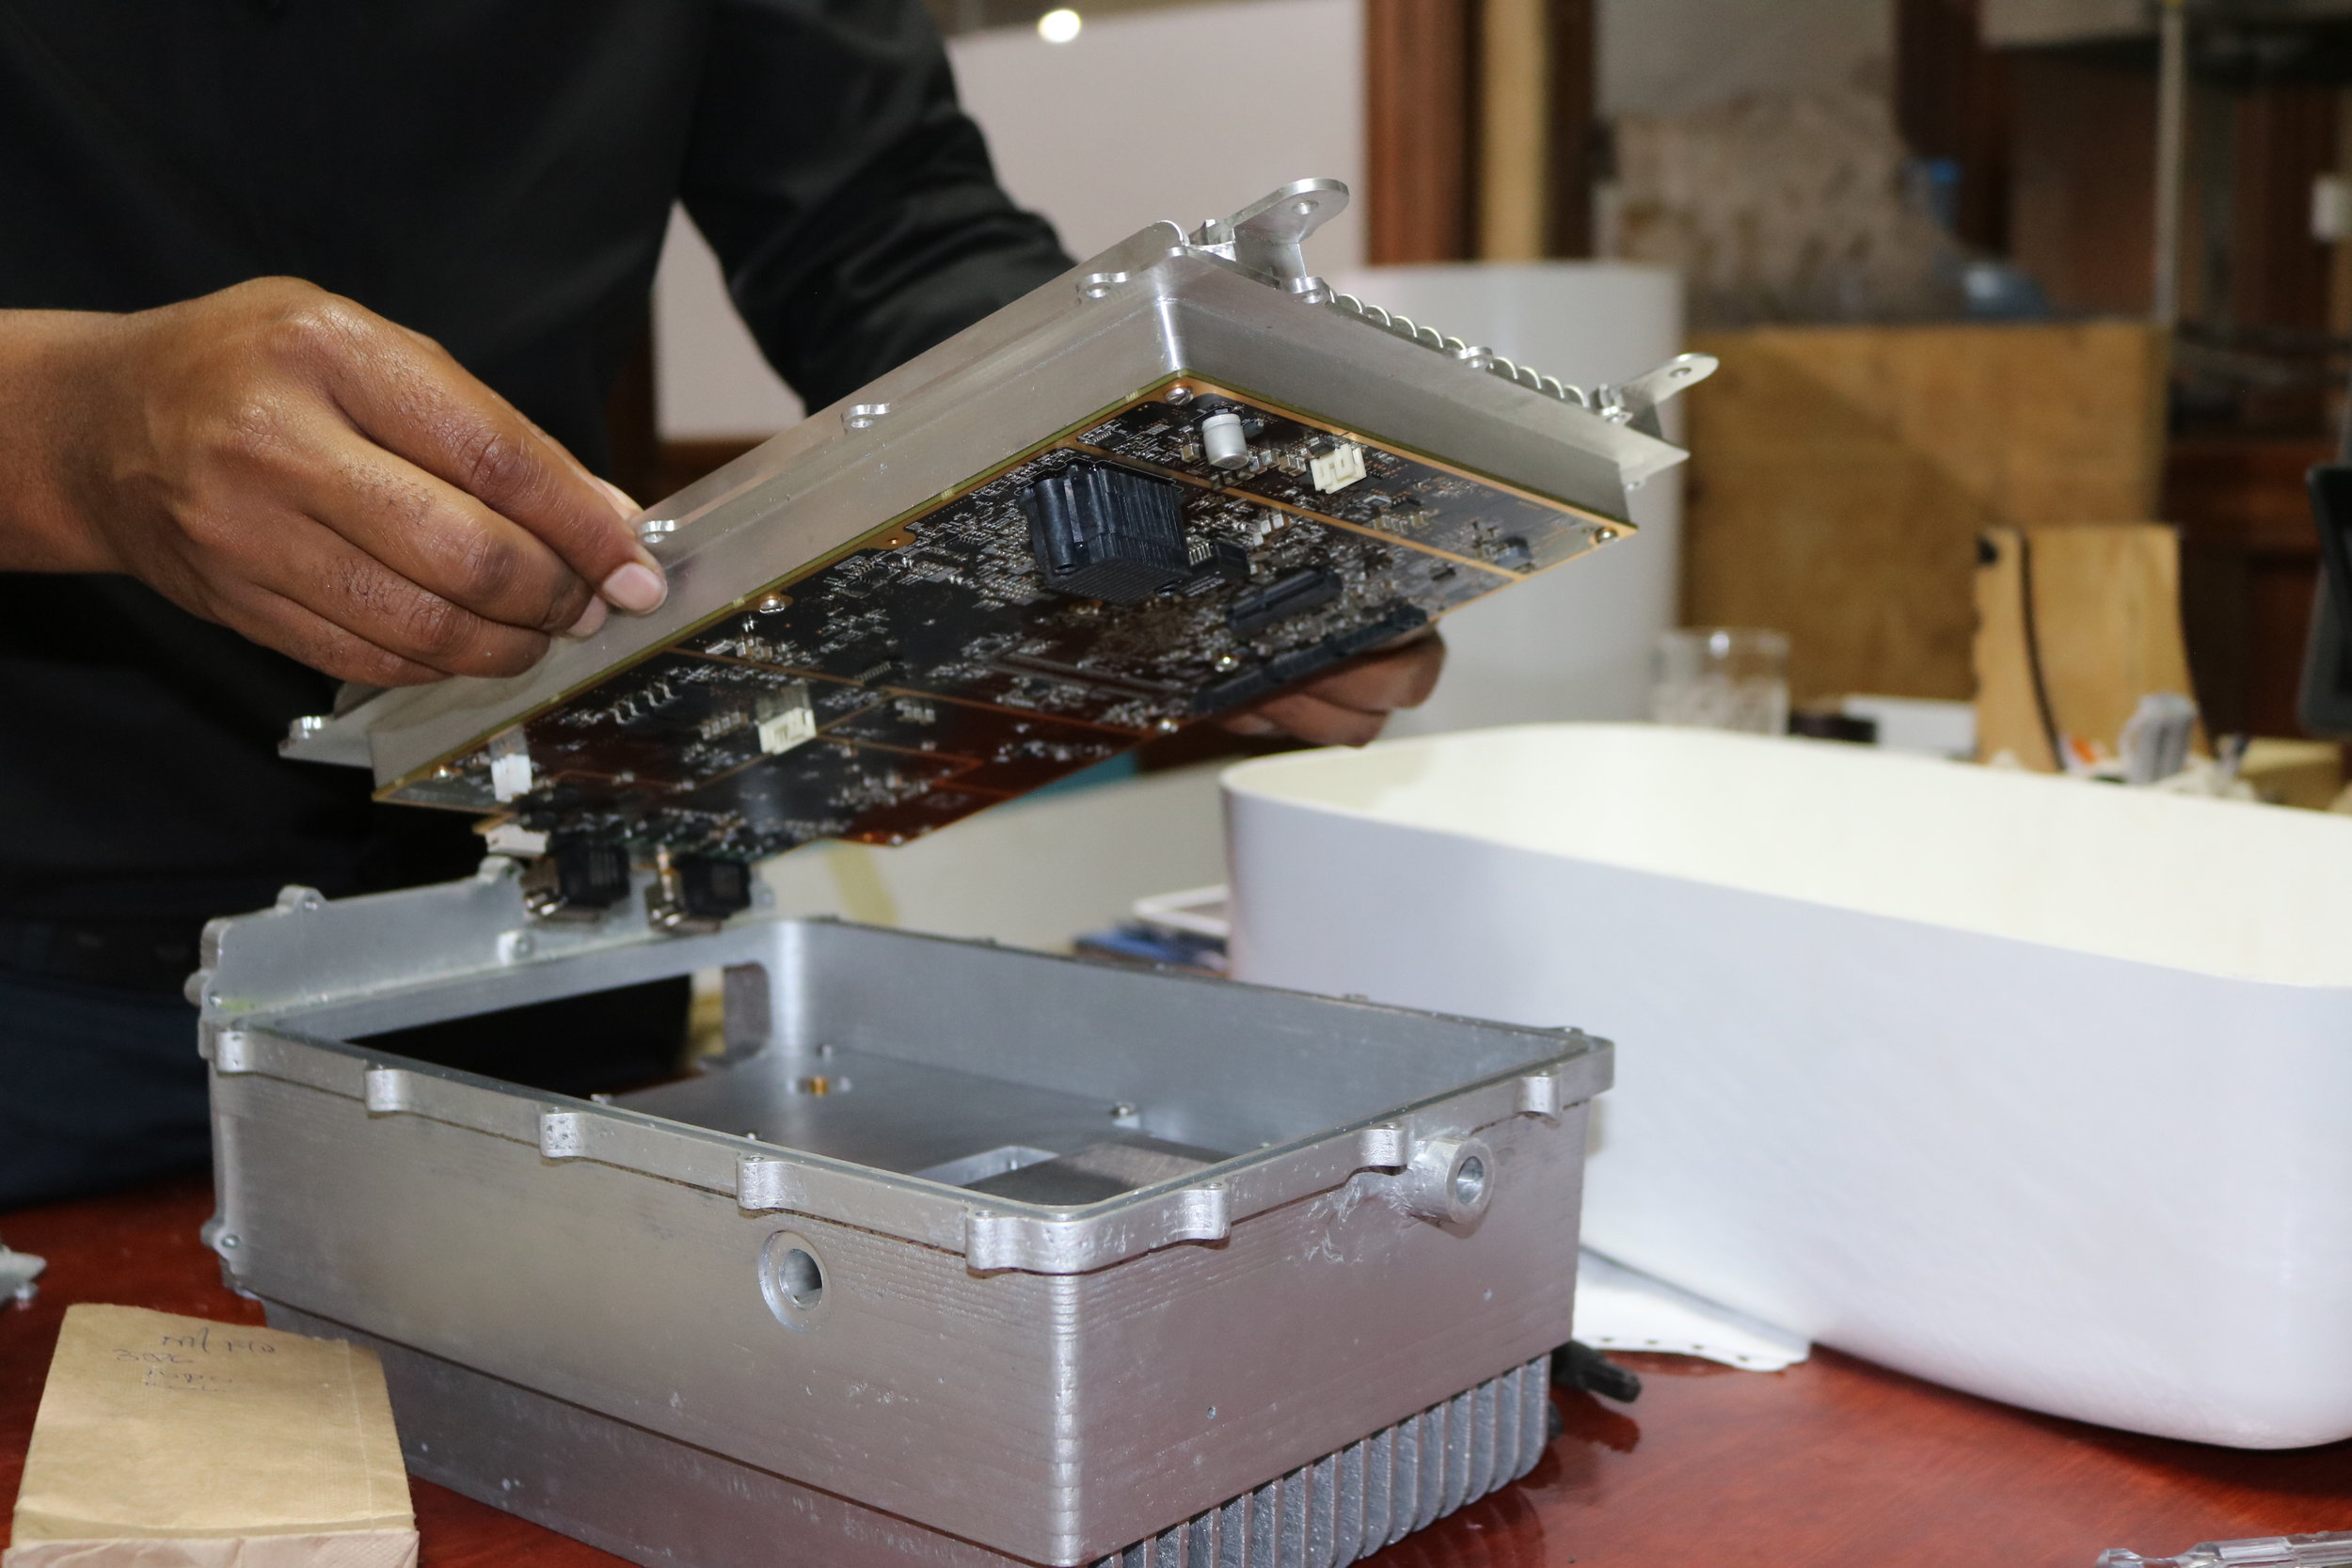 Gearbox was contracted by Facebook to build a case for an open cellular device, a device aimed at improving connectivity in remote areas.